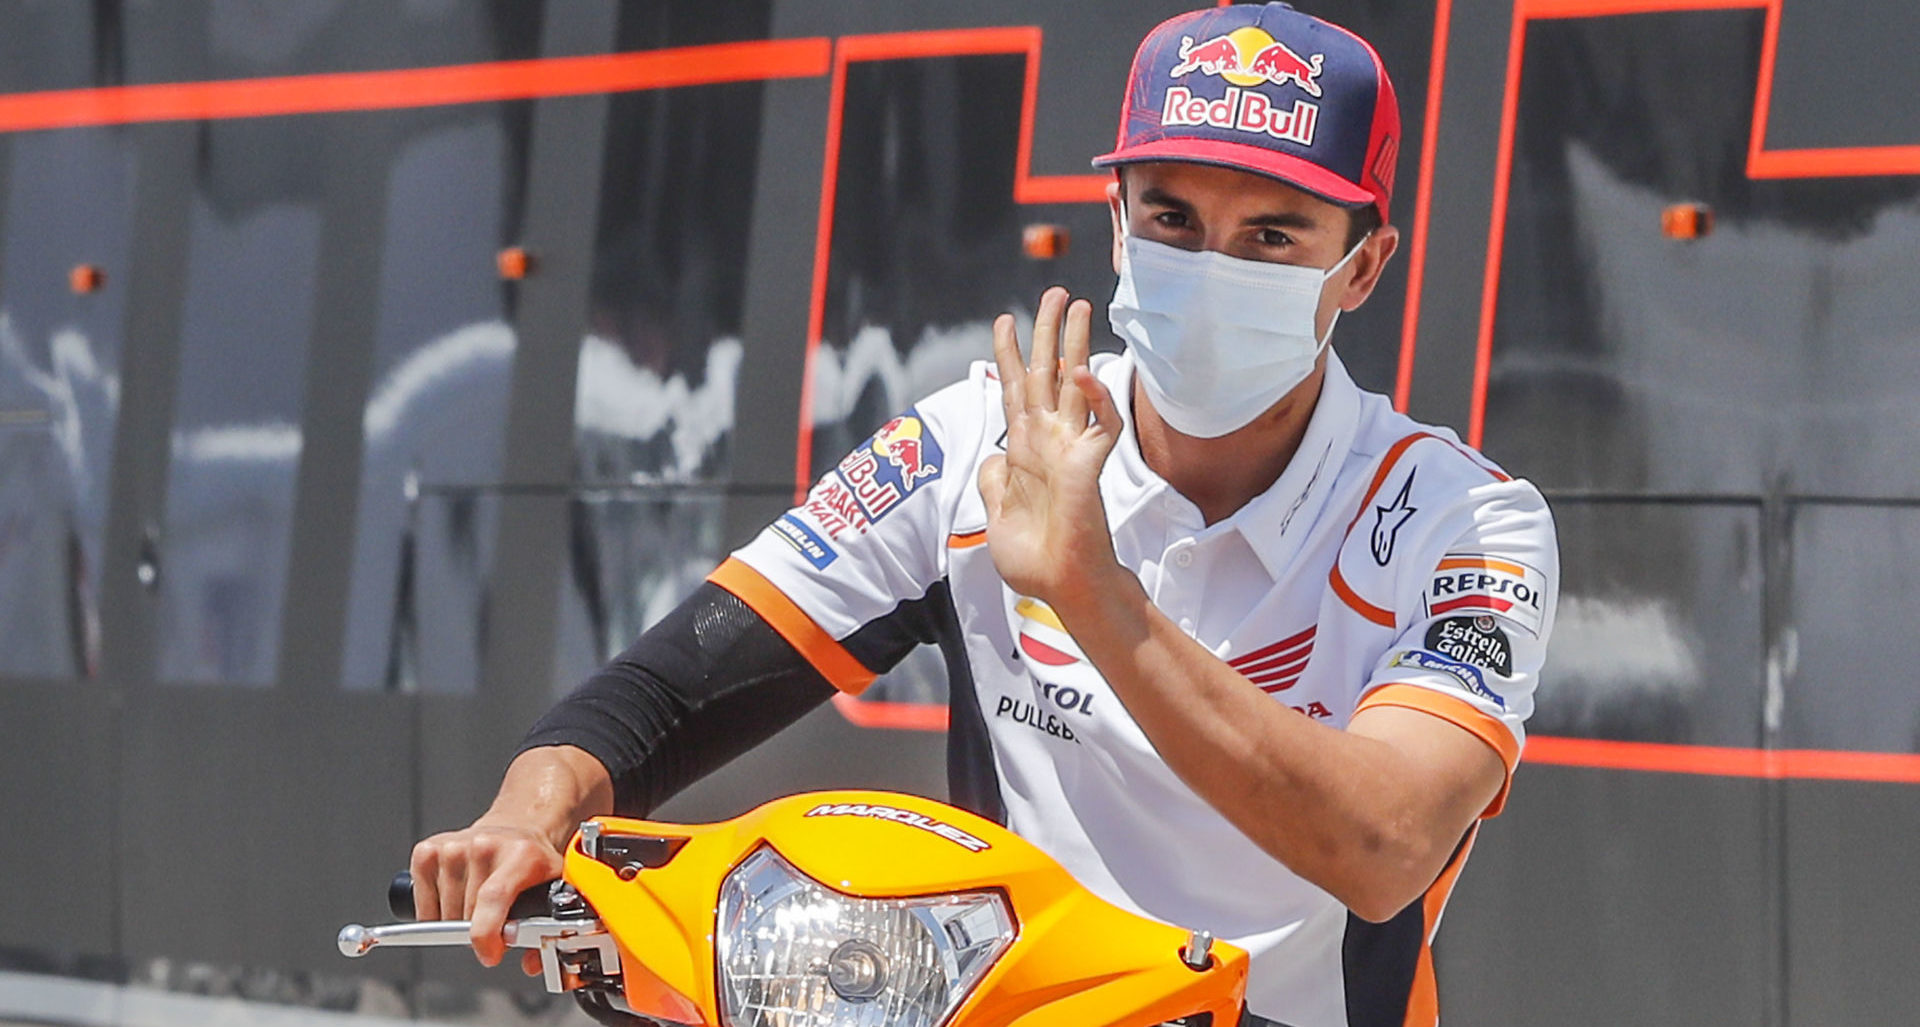 Marc Marquez at Jerez, after having the first surgery on his broken right arm. Photo courtesy Repsol Honda.